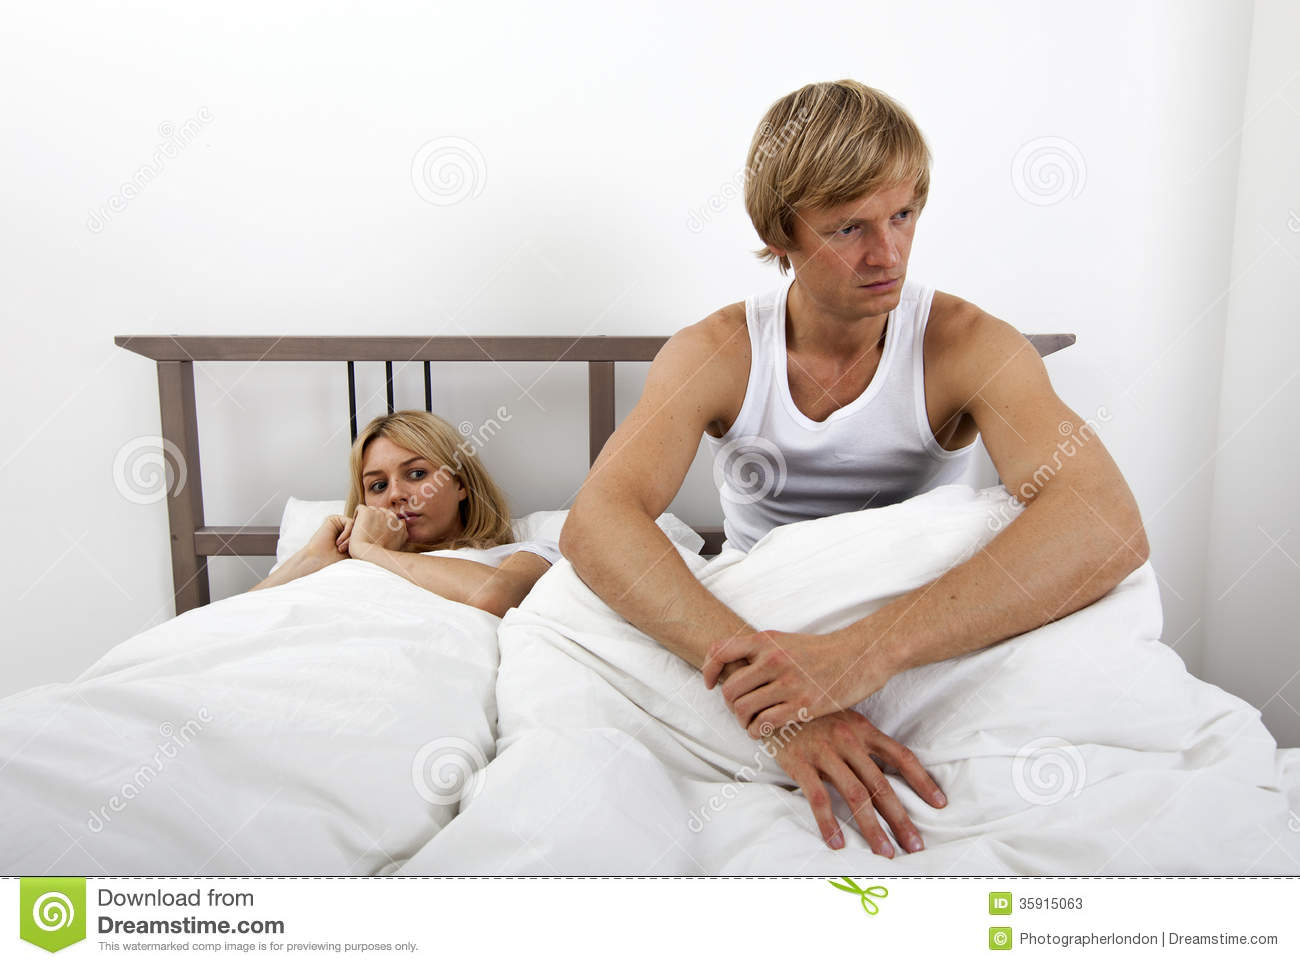 man on woman in bed pictures